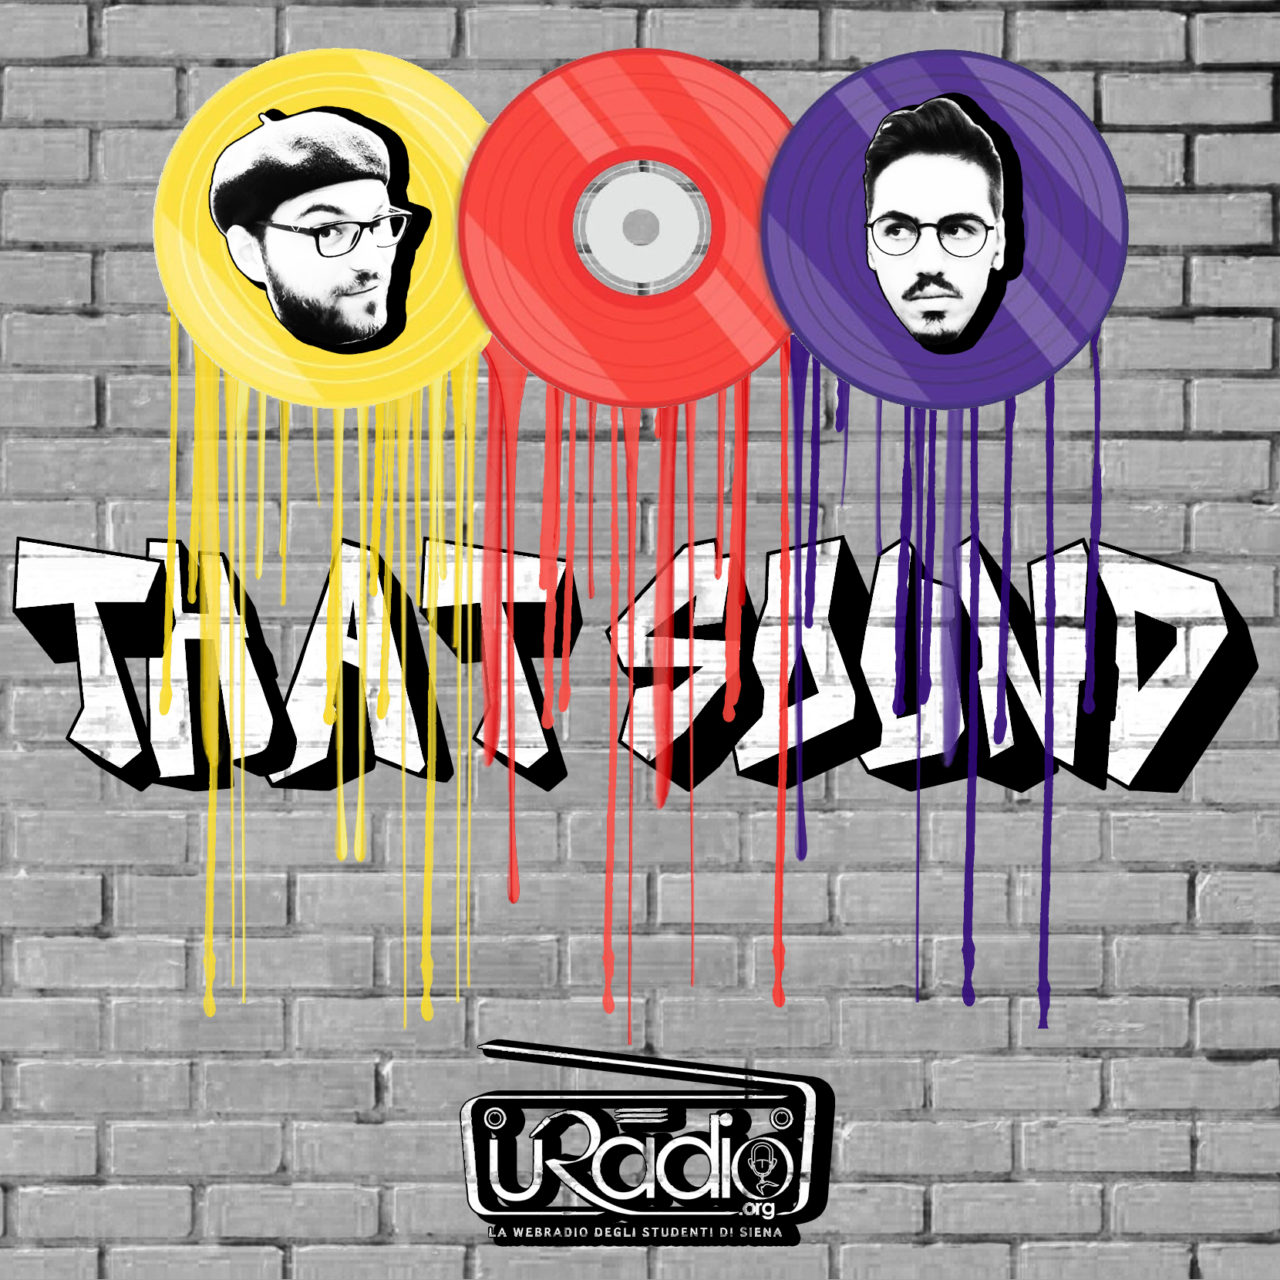 thatsound